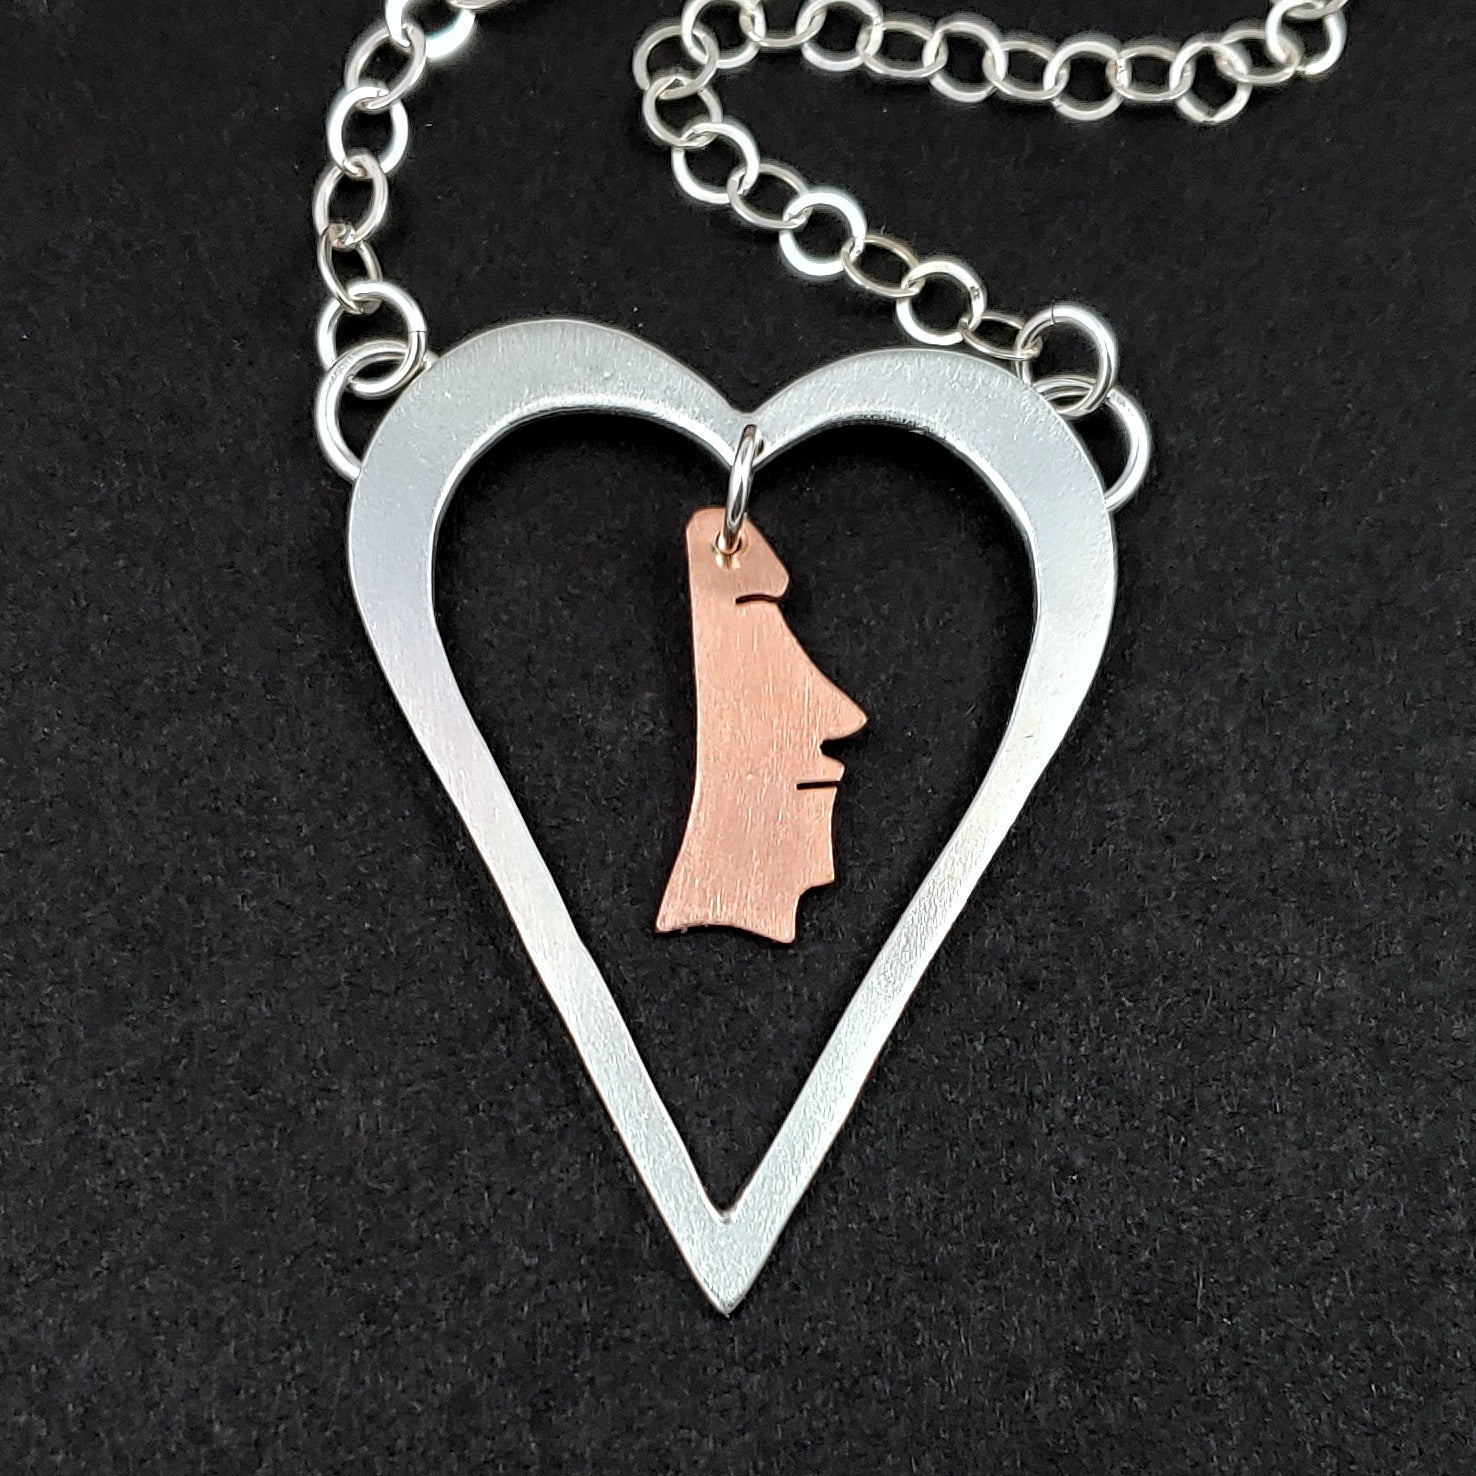 Sterling silver heart necklace with a copper moai head in the middle